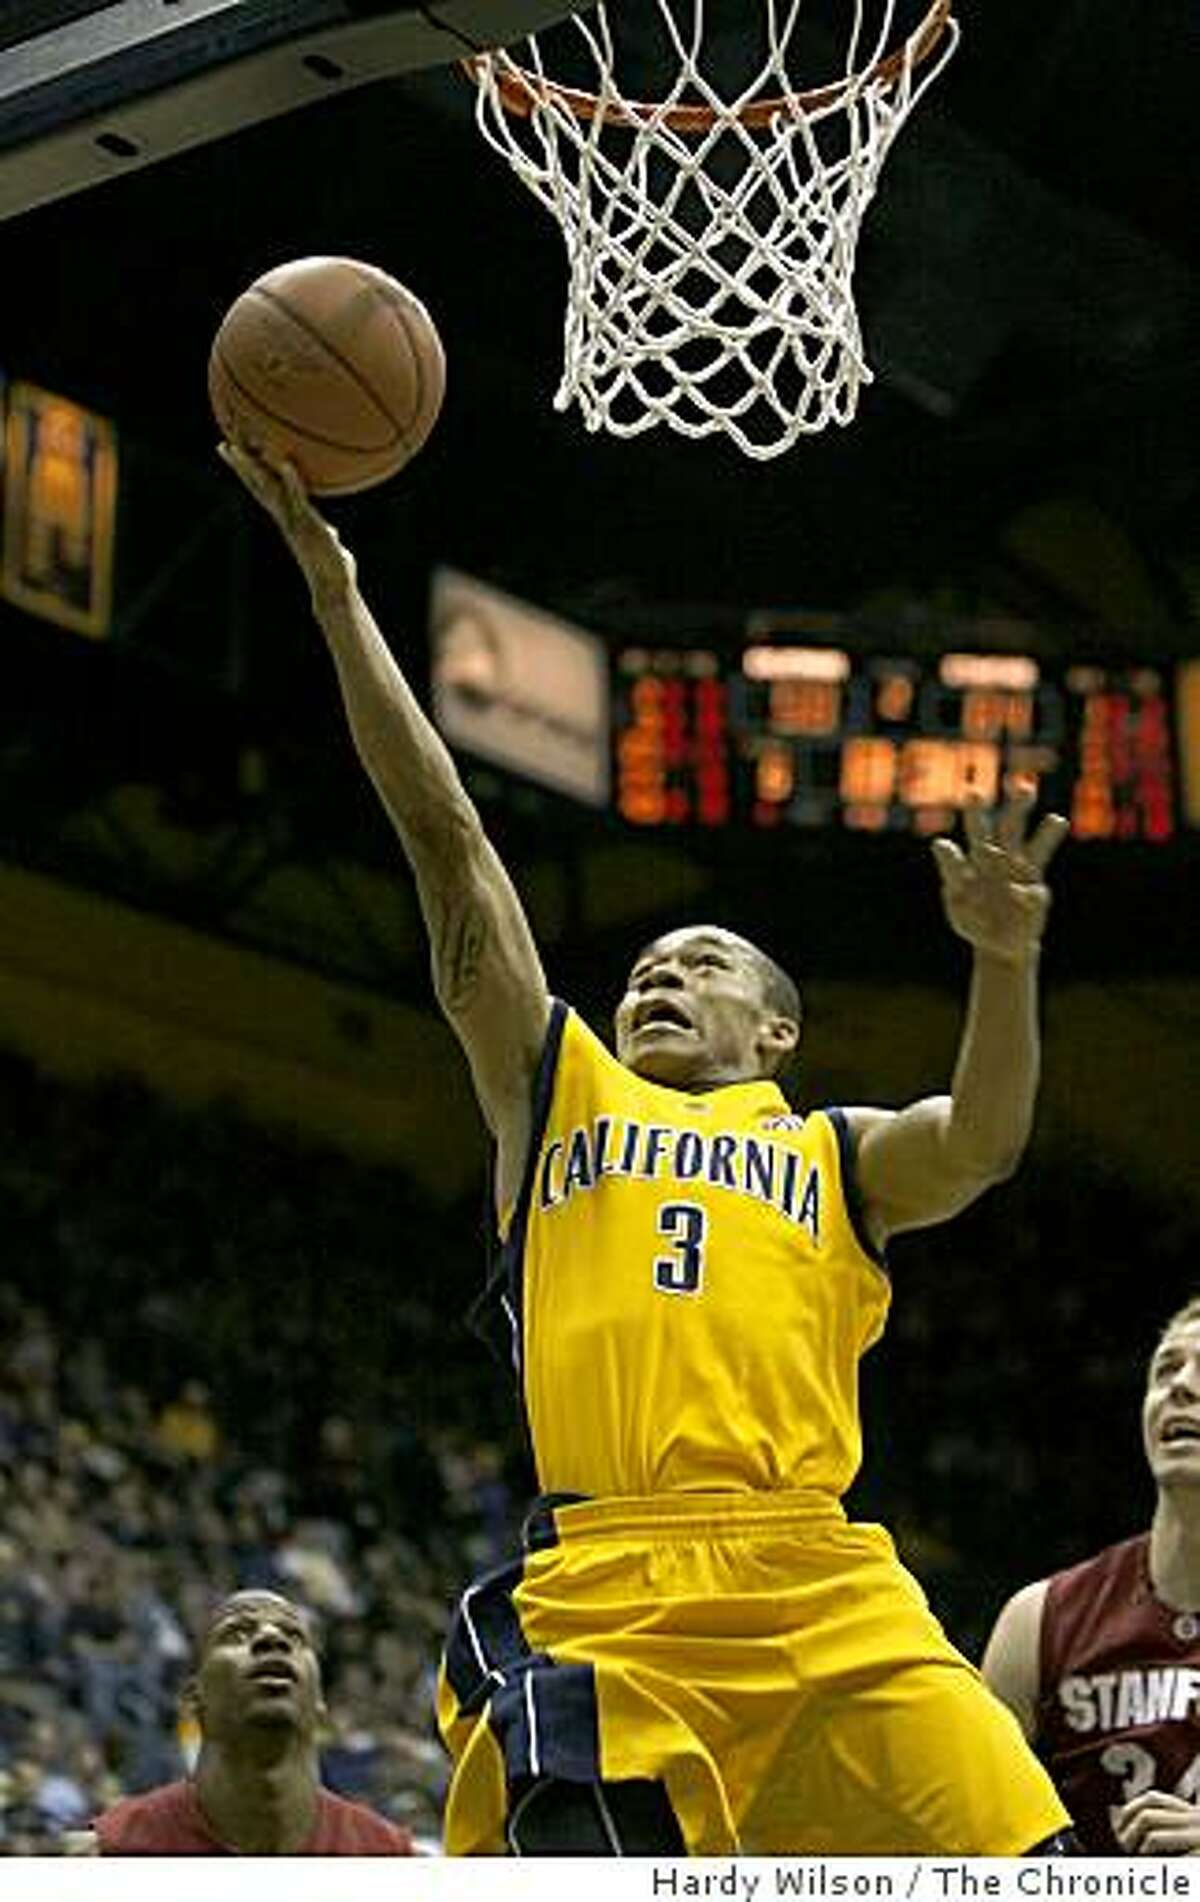 Cal Bears guard Jerome Randle (3) goes up for a layup in the second half against the Stanford Cardinals on Saturday, February 14, 2009, at Haas Pavilion in Berkeley, Calif. Cal won the game 82-75.